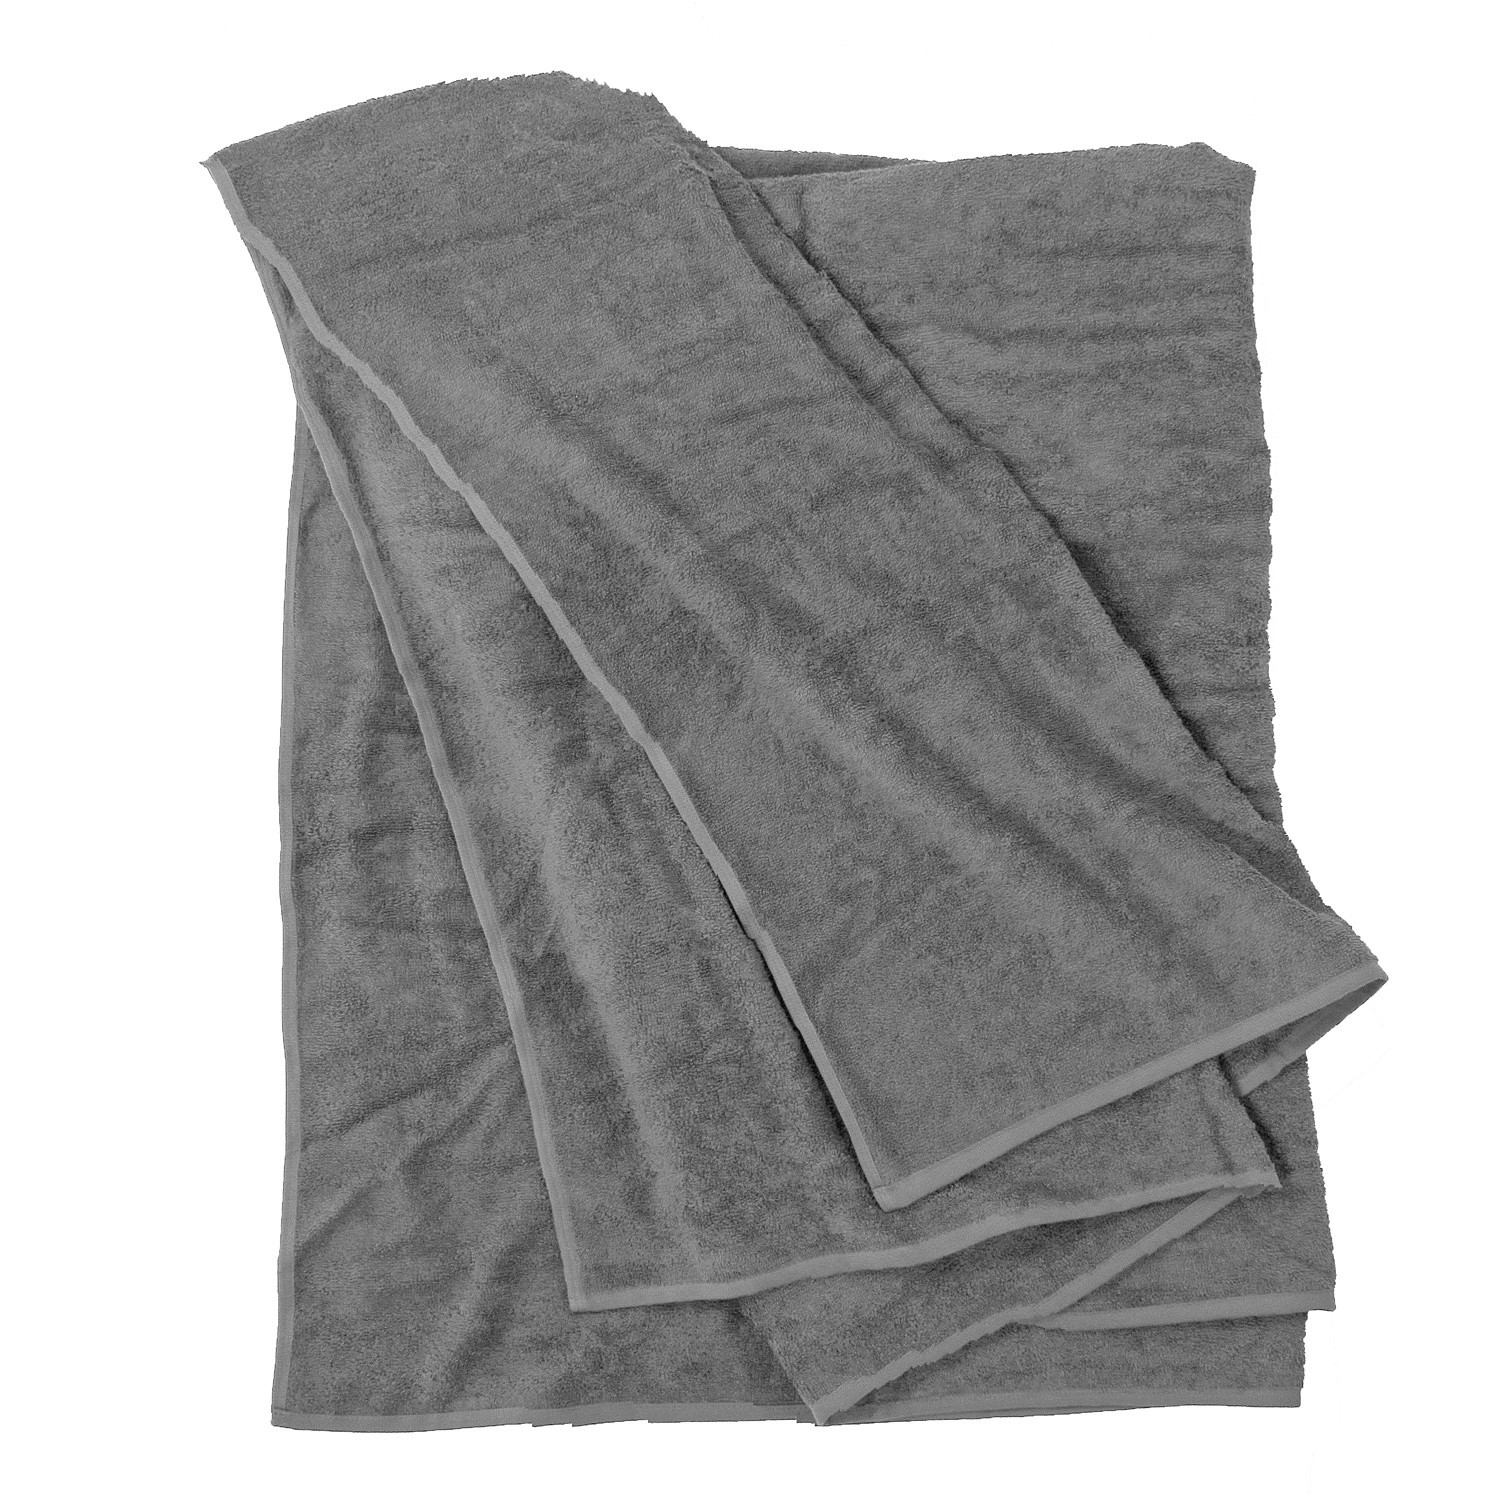 Detail Image to Bath towel in grey by Kapart in large sizes 100x220 cm and 155x220 cm